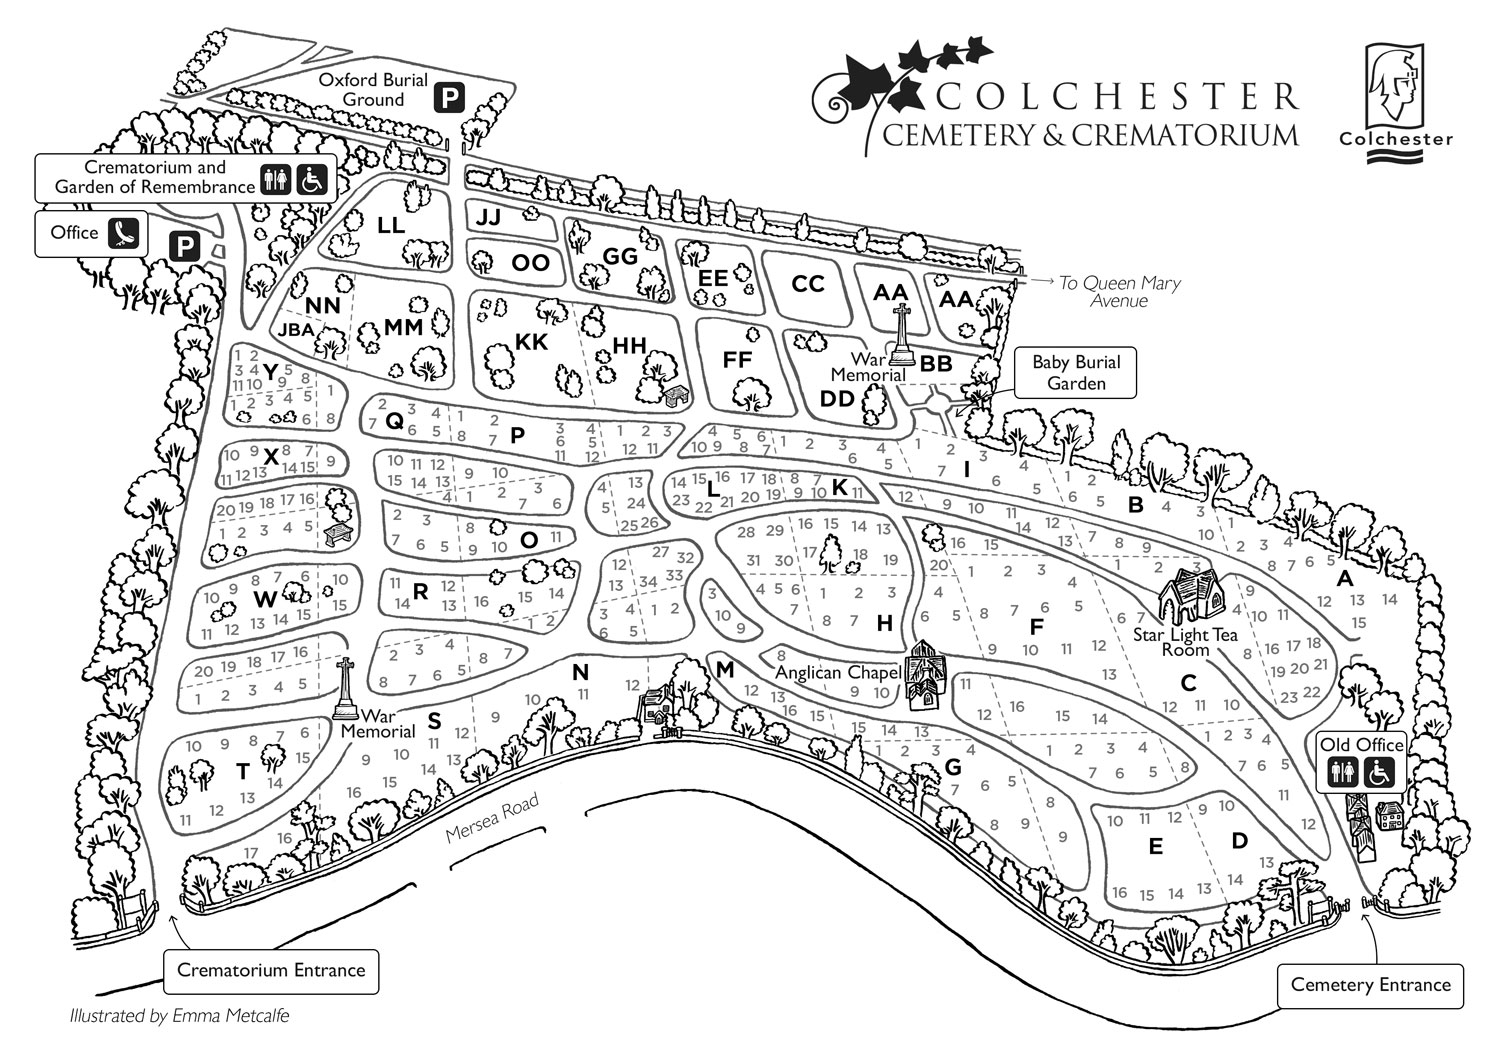 hand drawn illustration black and white line map illustrated bespoke visitor orientation map of Colchester Cemetery